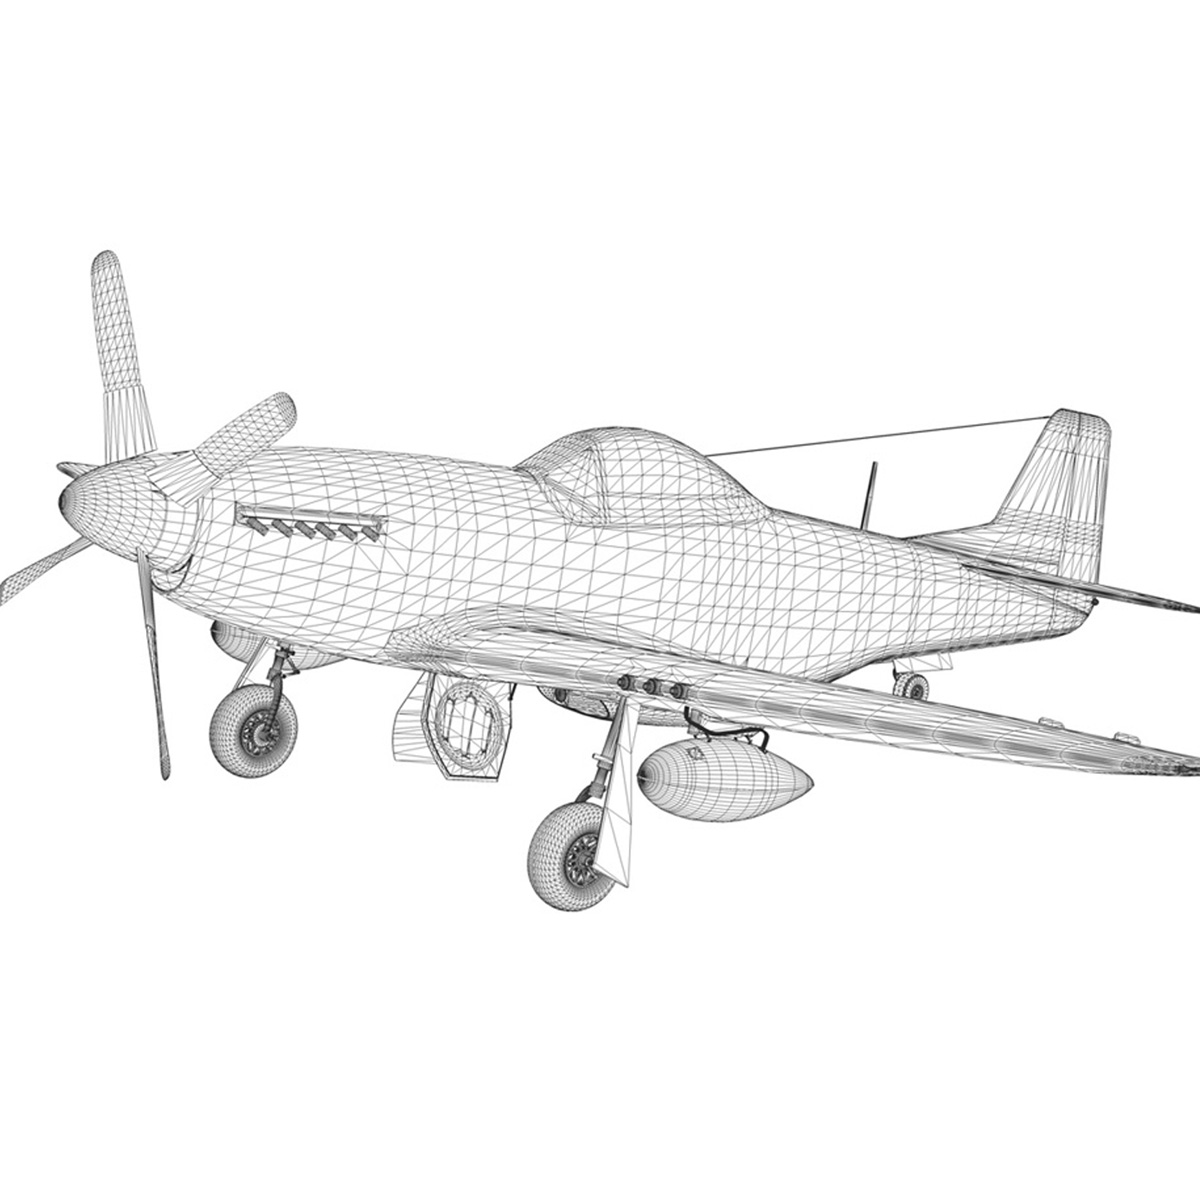 north american p-51d – mustang – detroit miss 3d model 3ds fbx c4d lwo obj 267610